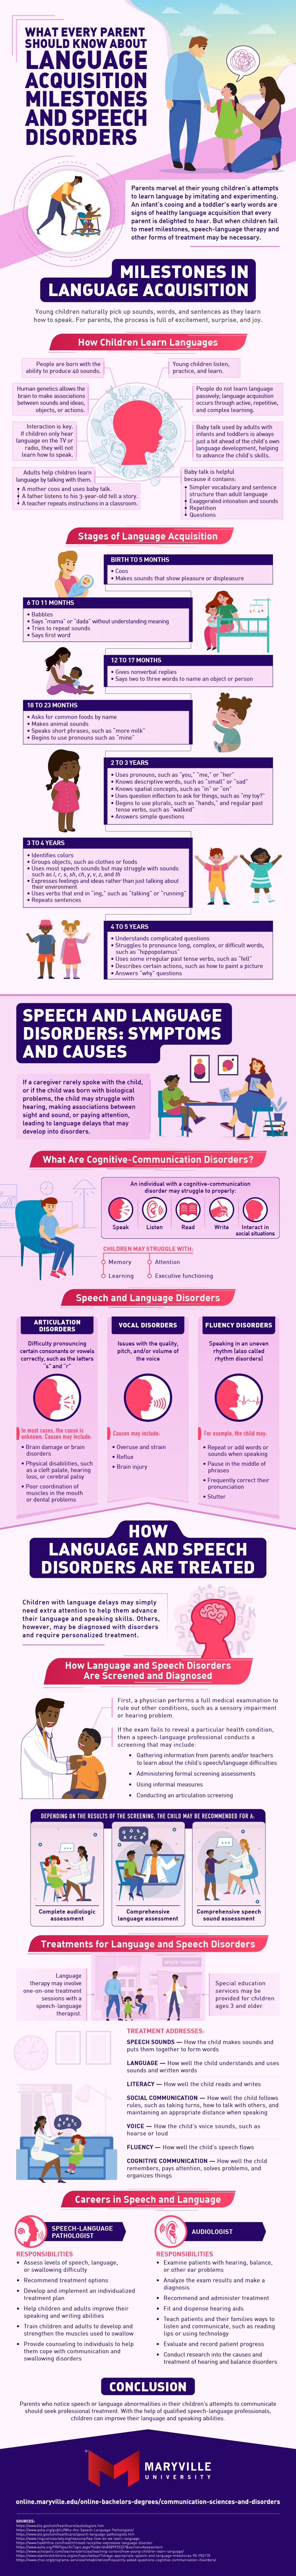 How speech and language disorders can be recognized and treated.